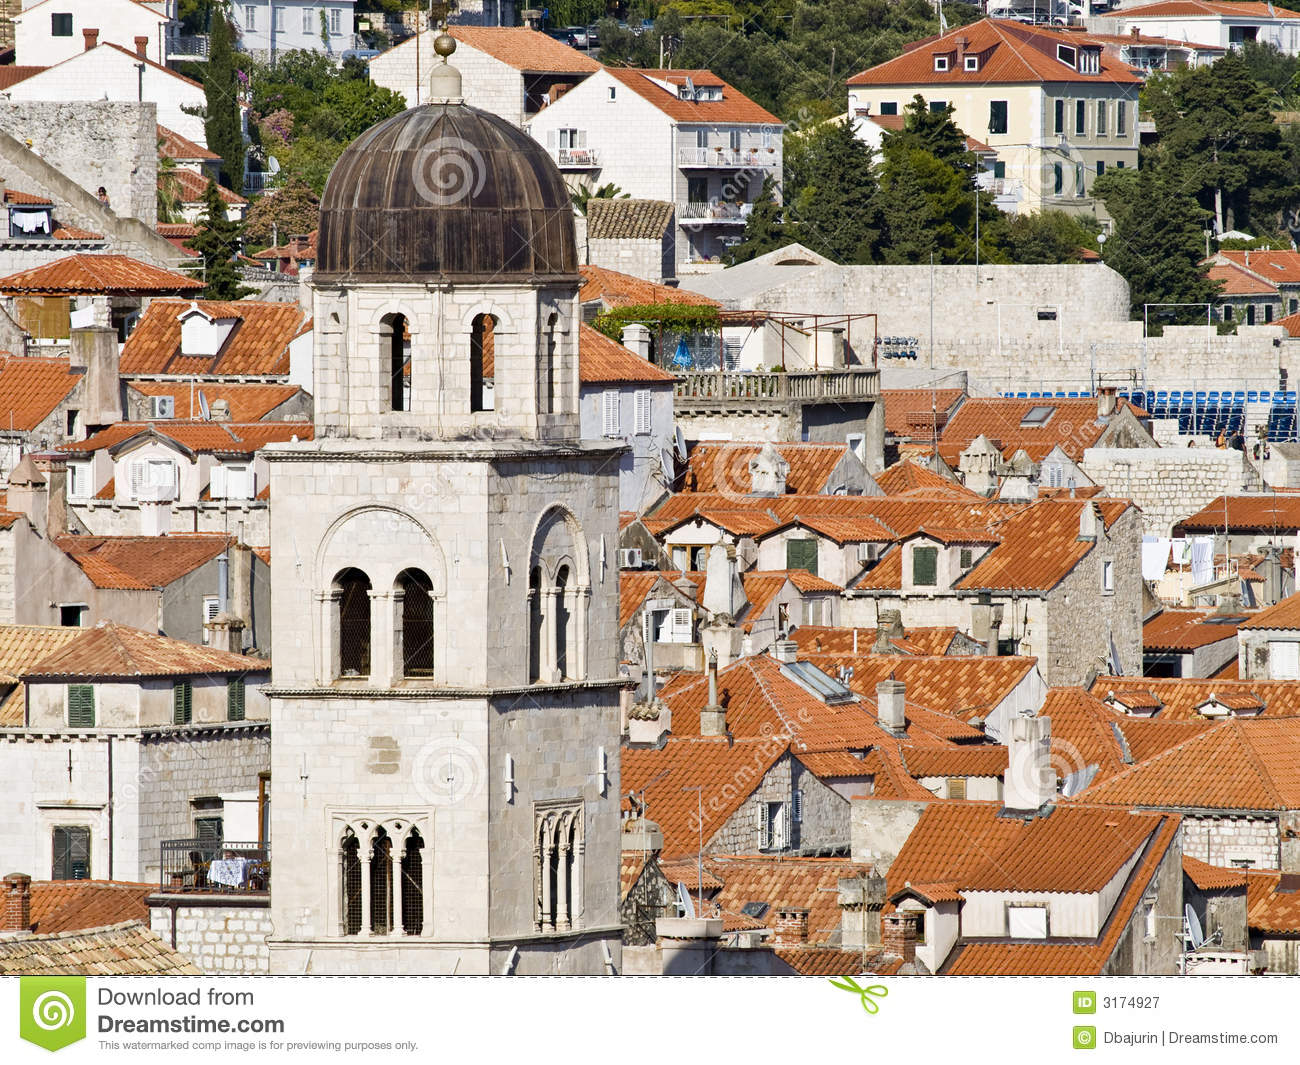 Dubrovnik old town royalty free stock photography image - The house in the old franciscan tower ...